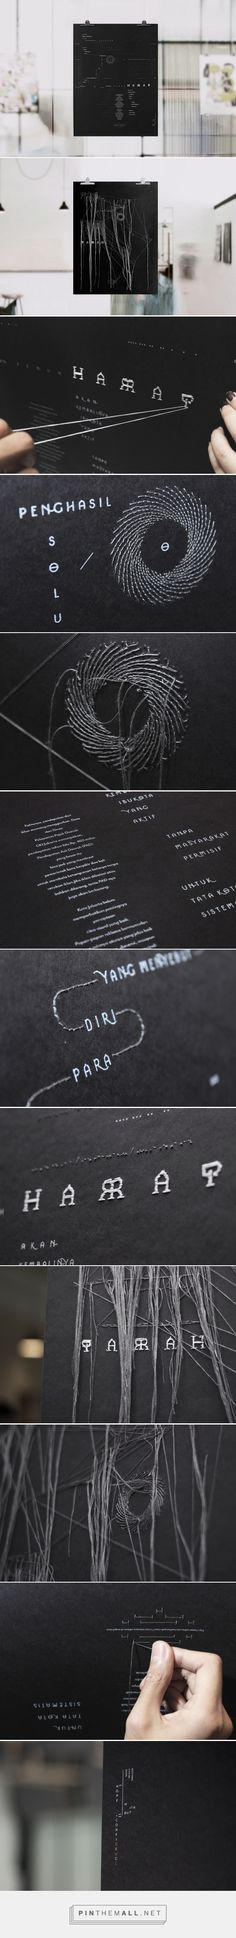 Harap Parah on Behance - Sewn poster, threads